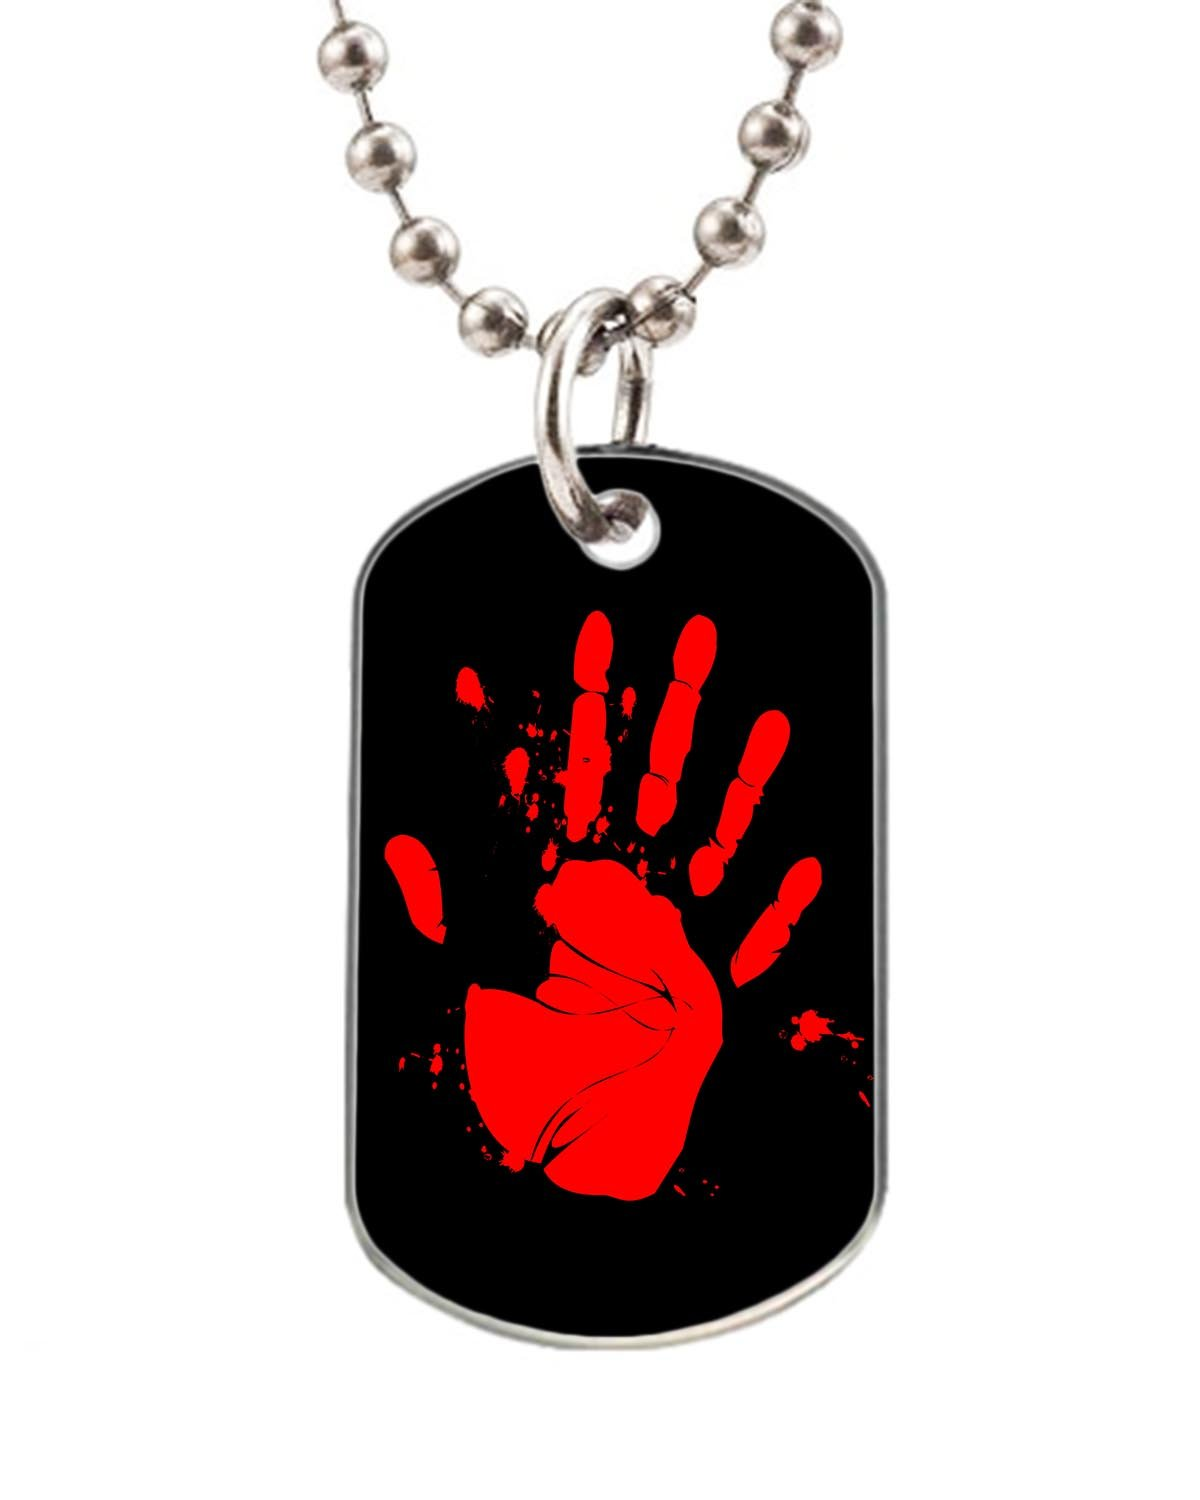 Blood hand print dog pet tag--- BIG-Size oval Dog Pet Tag 1.32 x 2.2 inche with 38  Aluminum Bead Chain